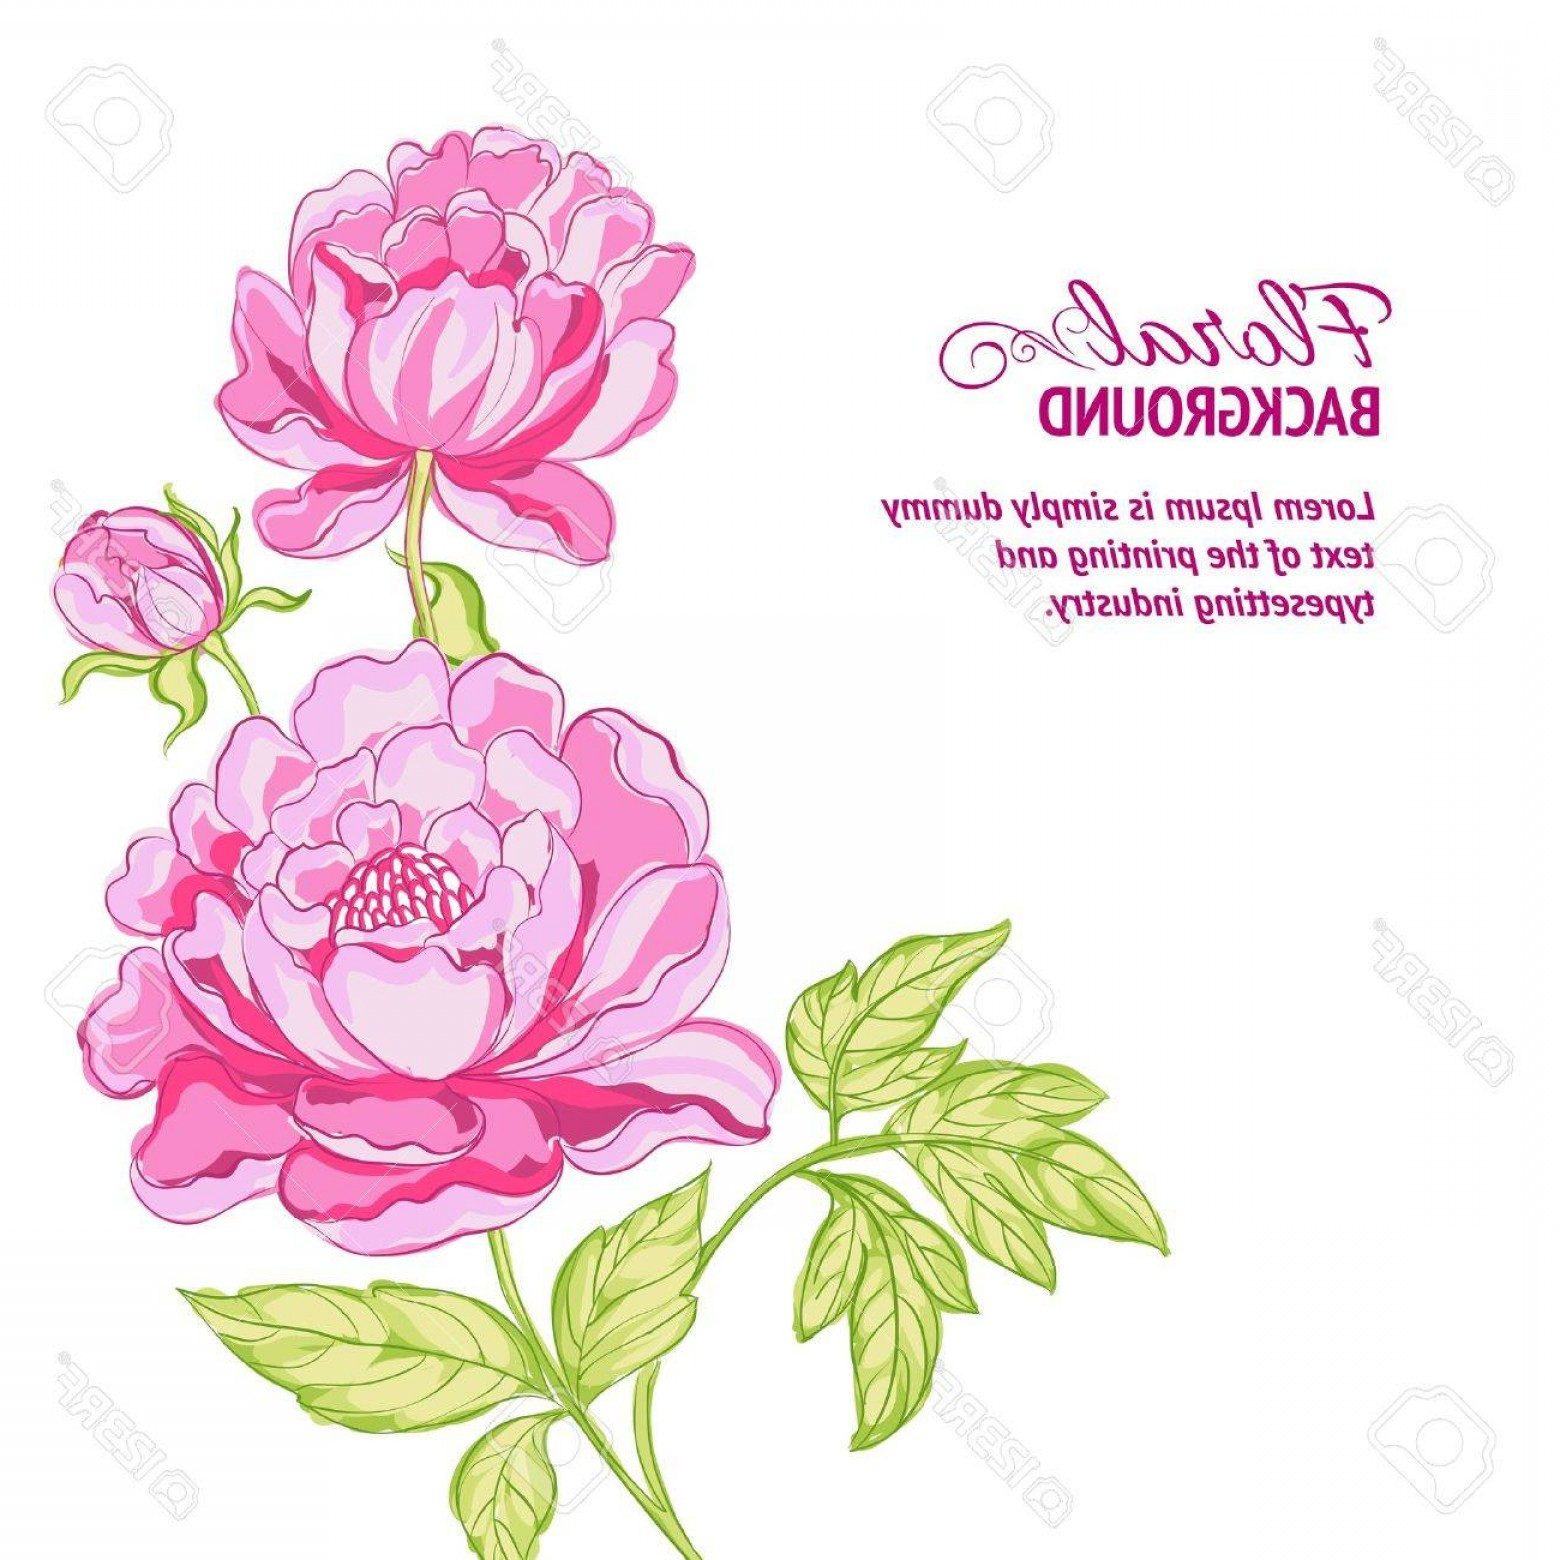 Pink Peony Vector: Photopink Peonies Background With Sample Text Vector Illustration